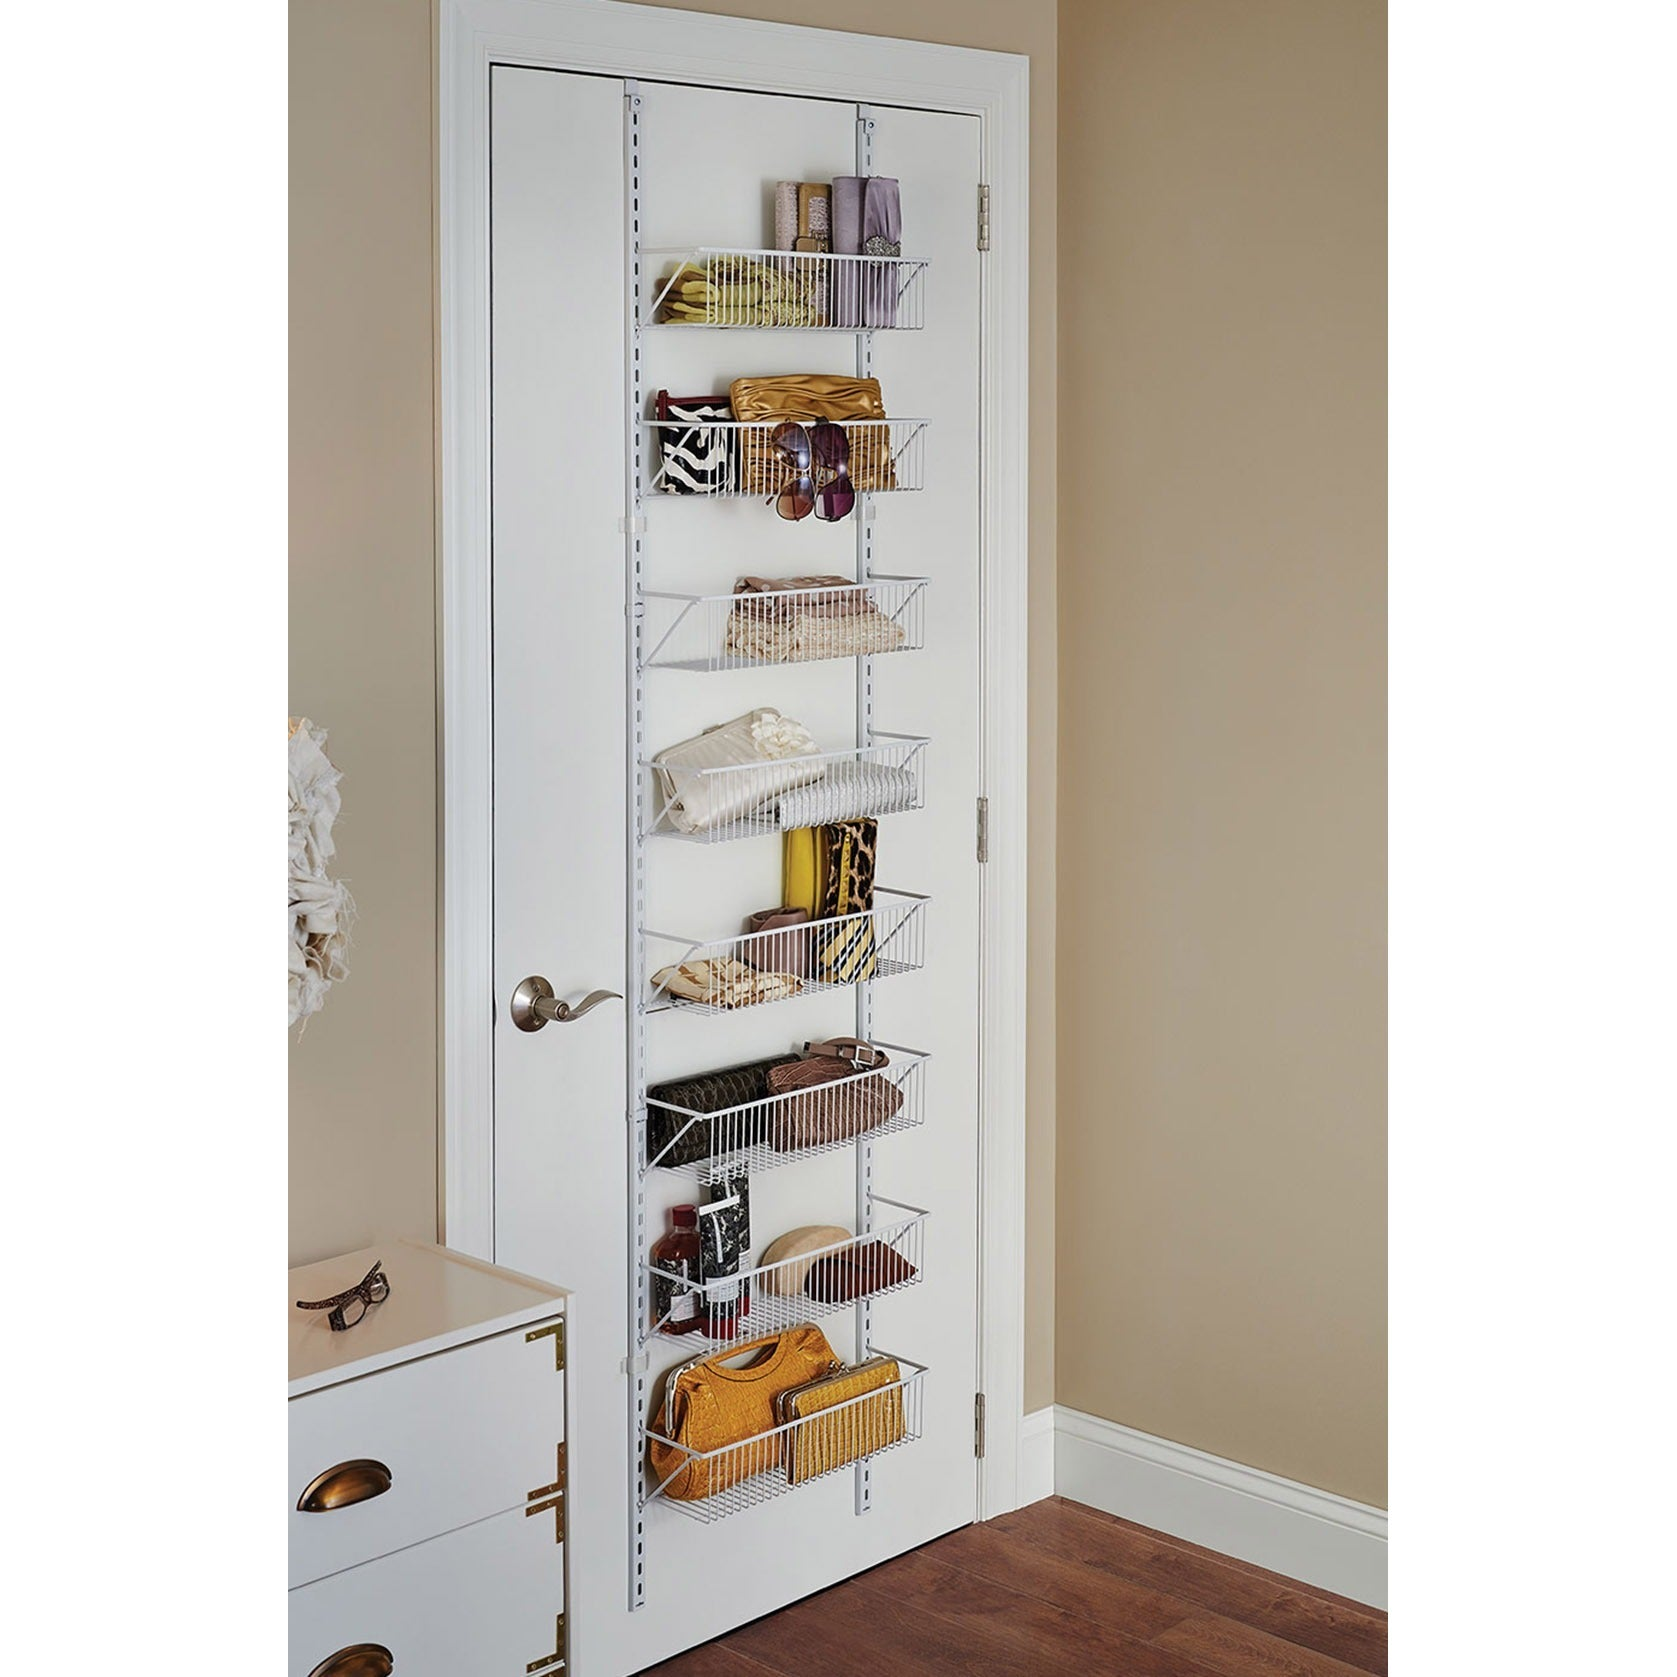 Genial Shop ClosetMaid White Epoxy Coated Stainless Steel Adjustable Hanging Basket  Organizer   Free Shipping Today   Overstock.com   11591323